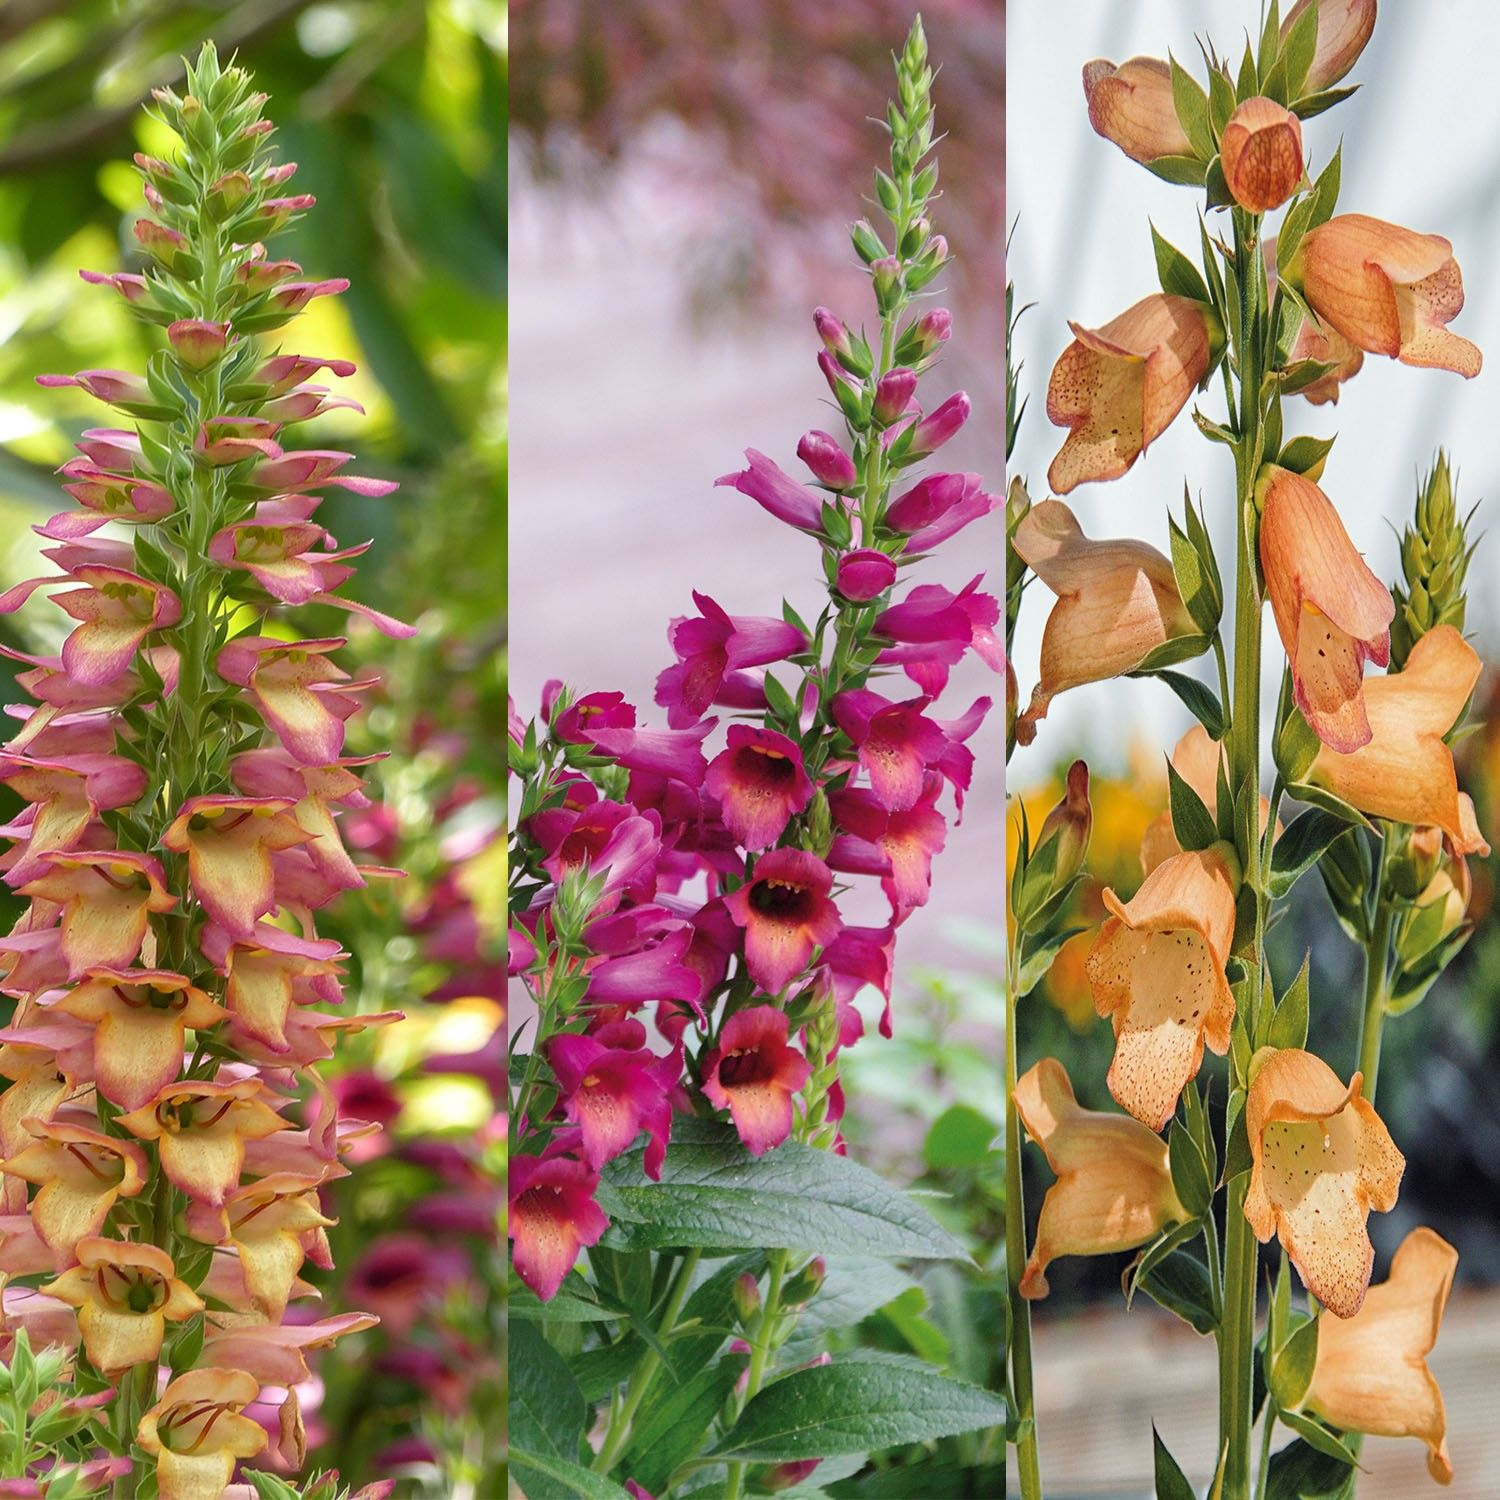 Collection de 3 Digiplexis Illumination - Digitalis hybrides